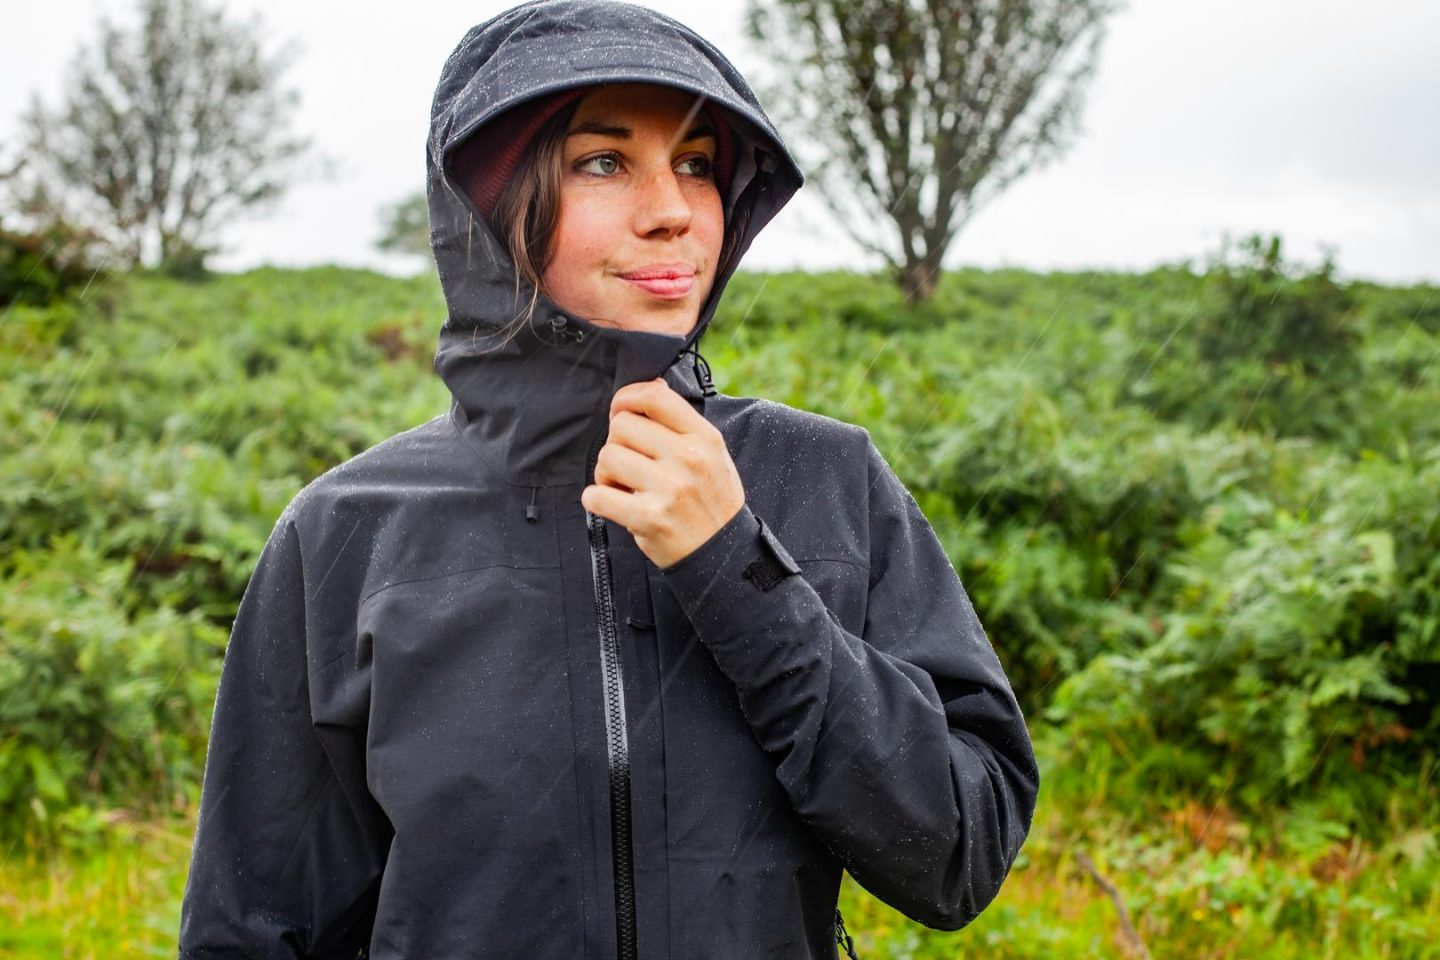 How to look after outdoor kit: cleaning, maintenance and repair for waterproof jackets Sian Lewis The Girl Outdoors